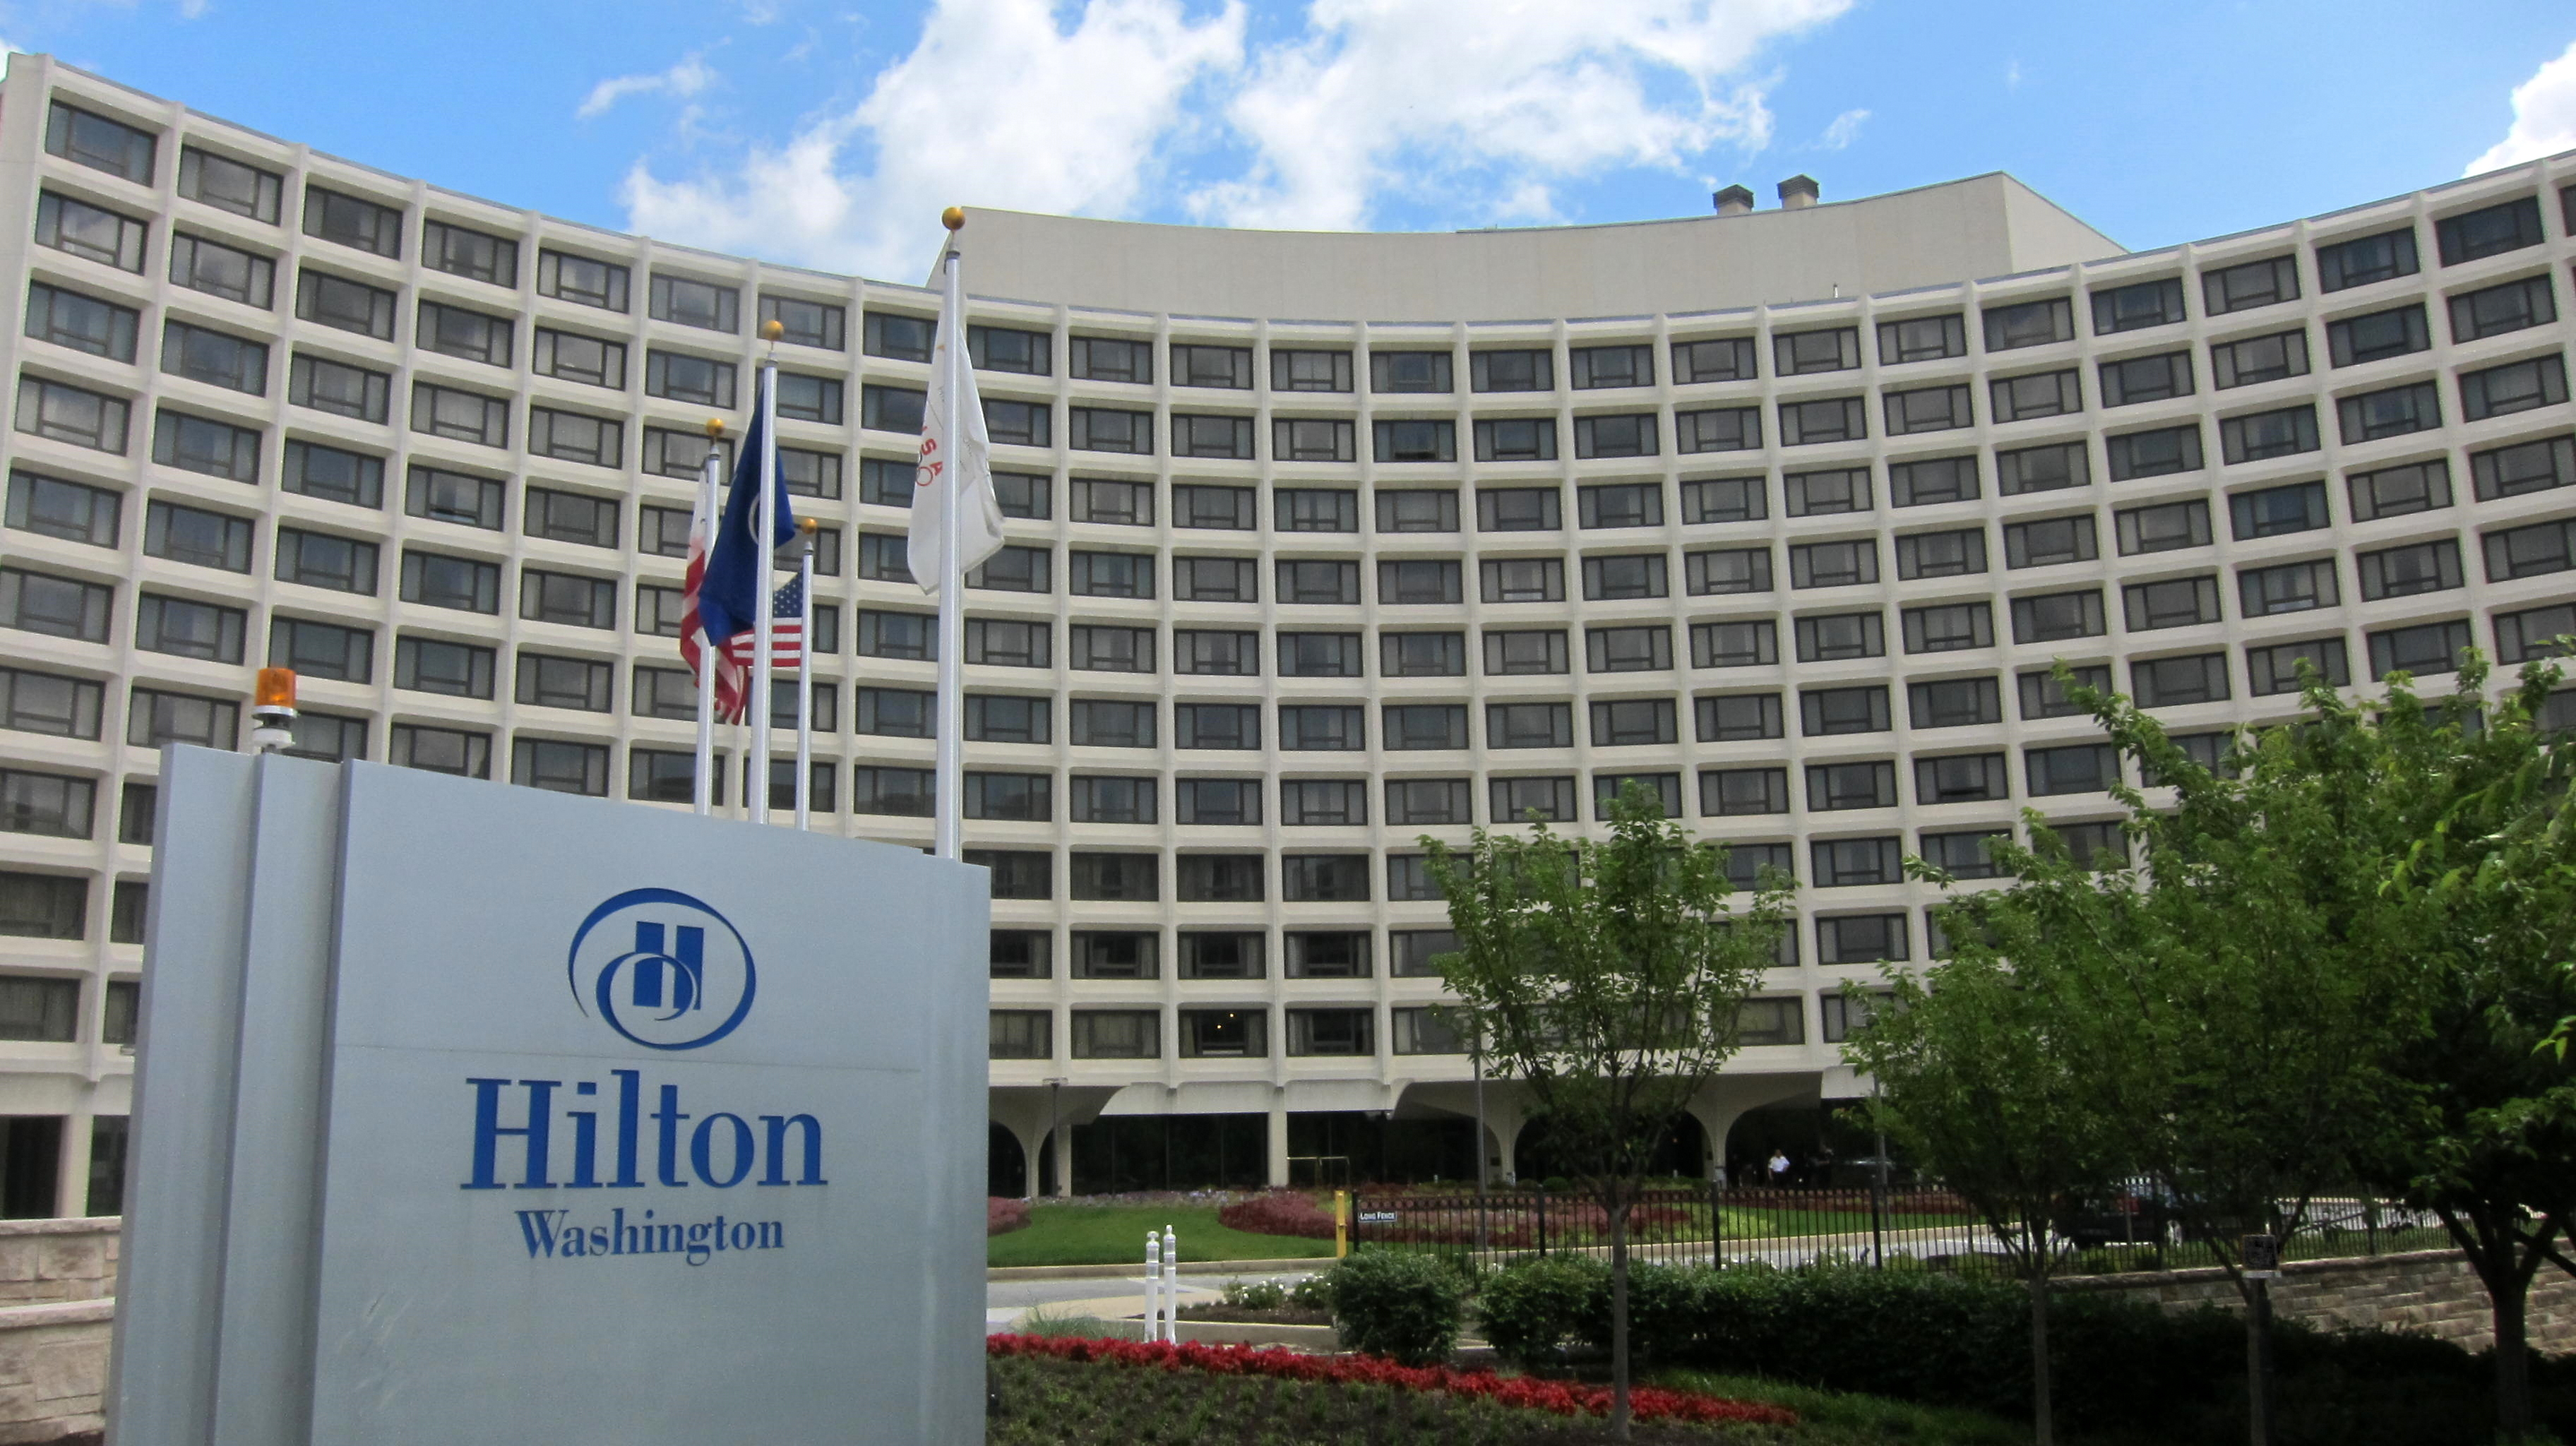 The Hilton Hotel Chicago